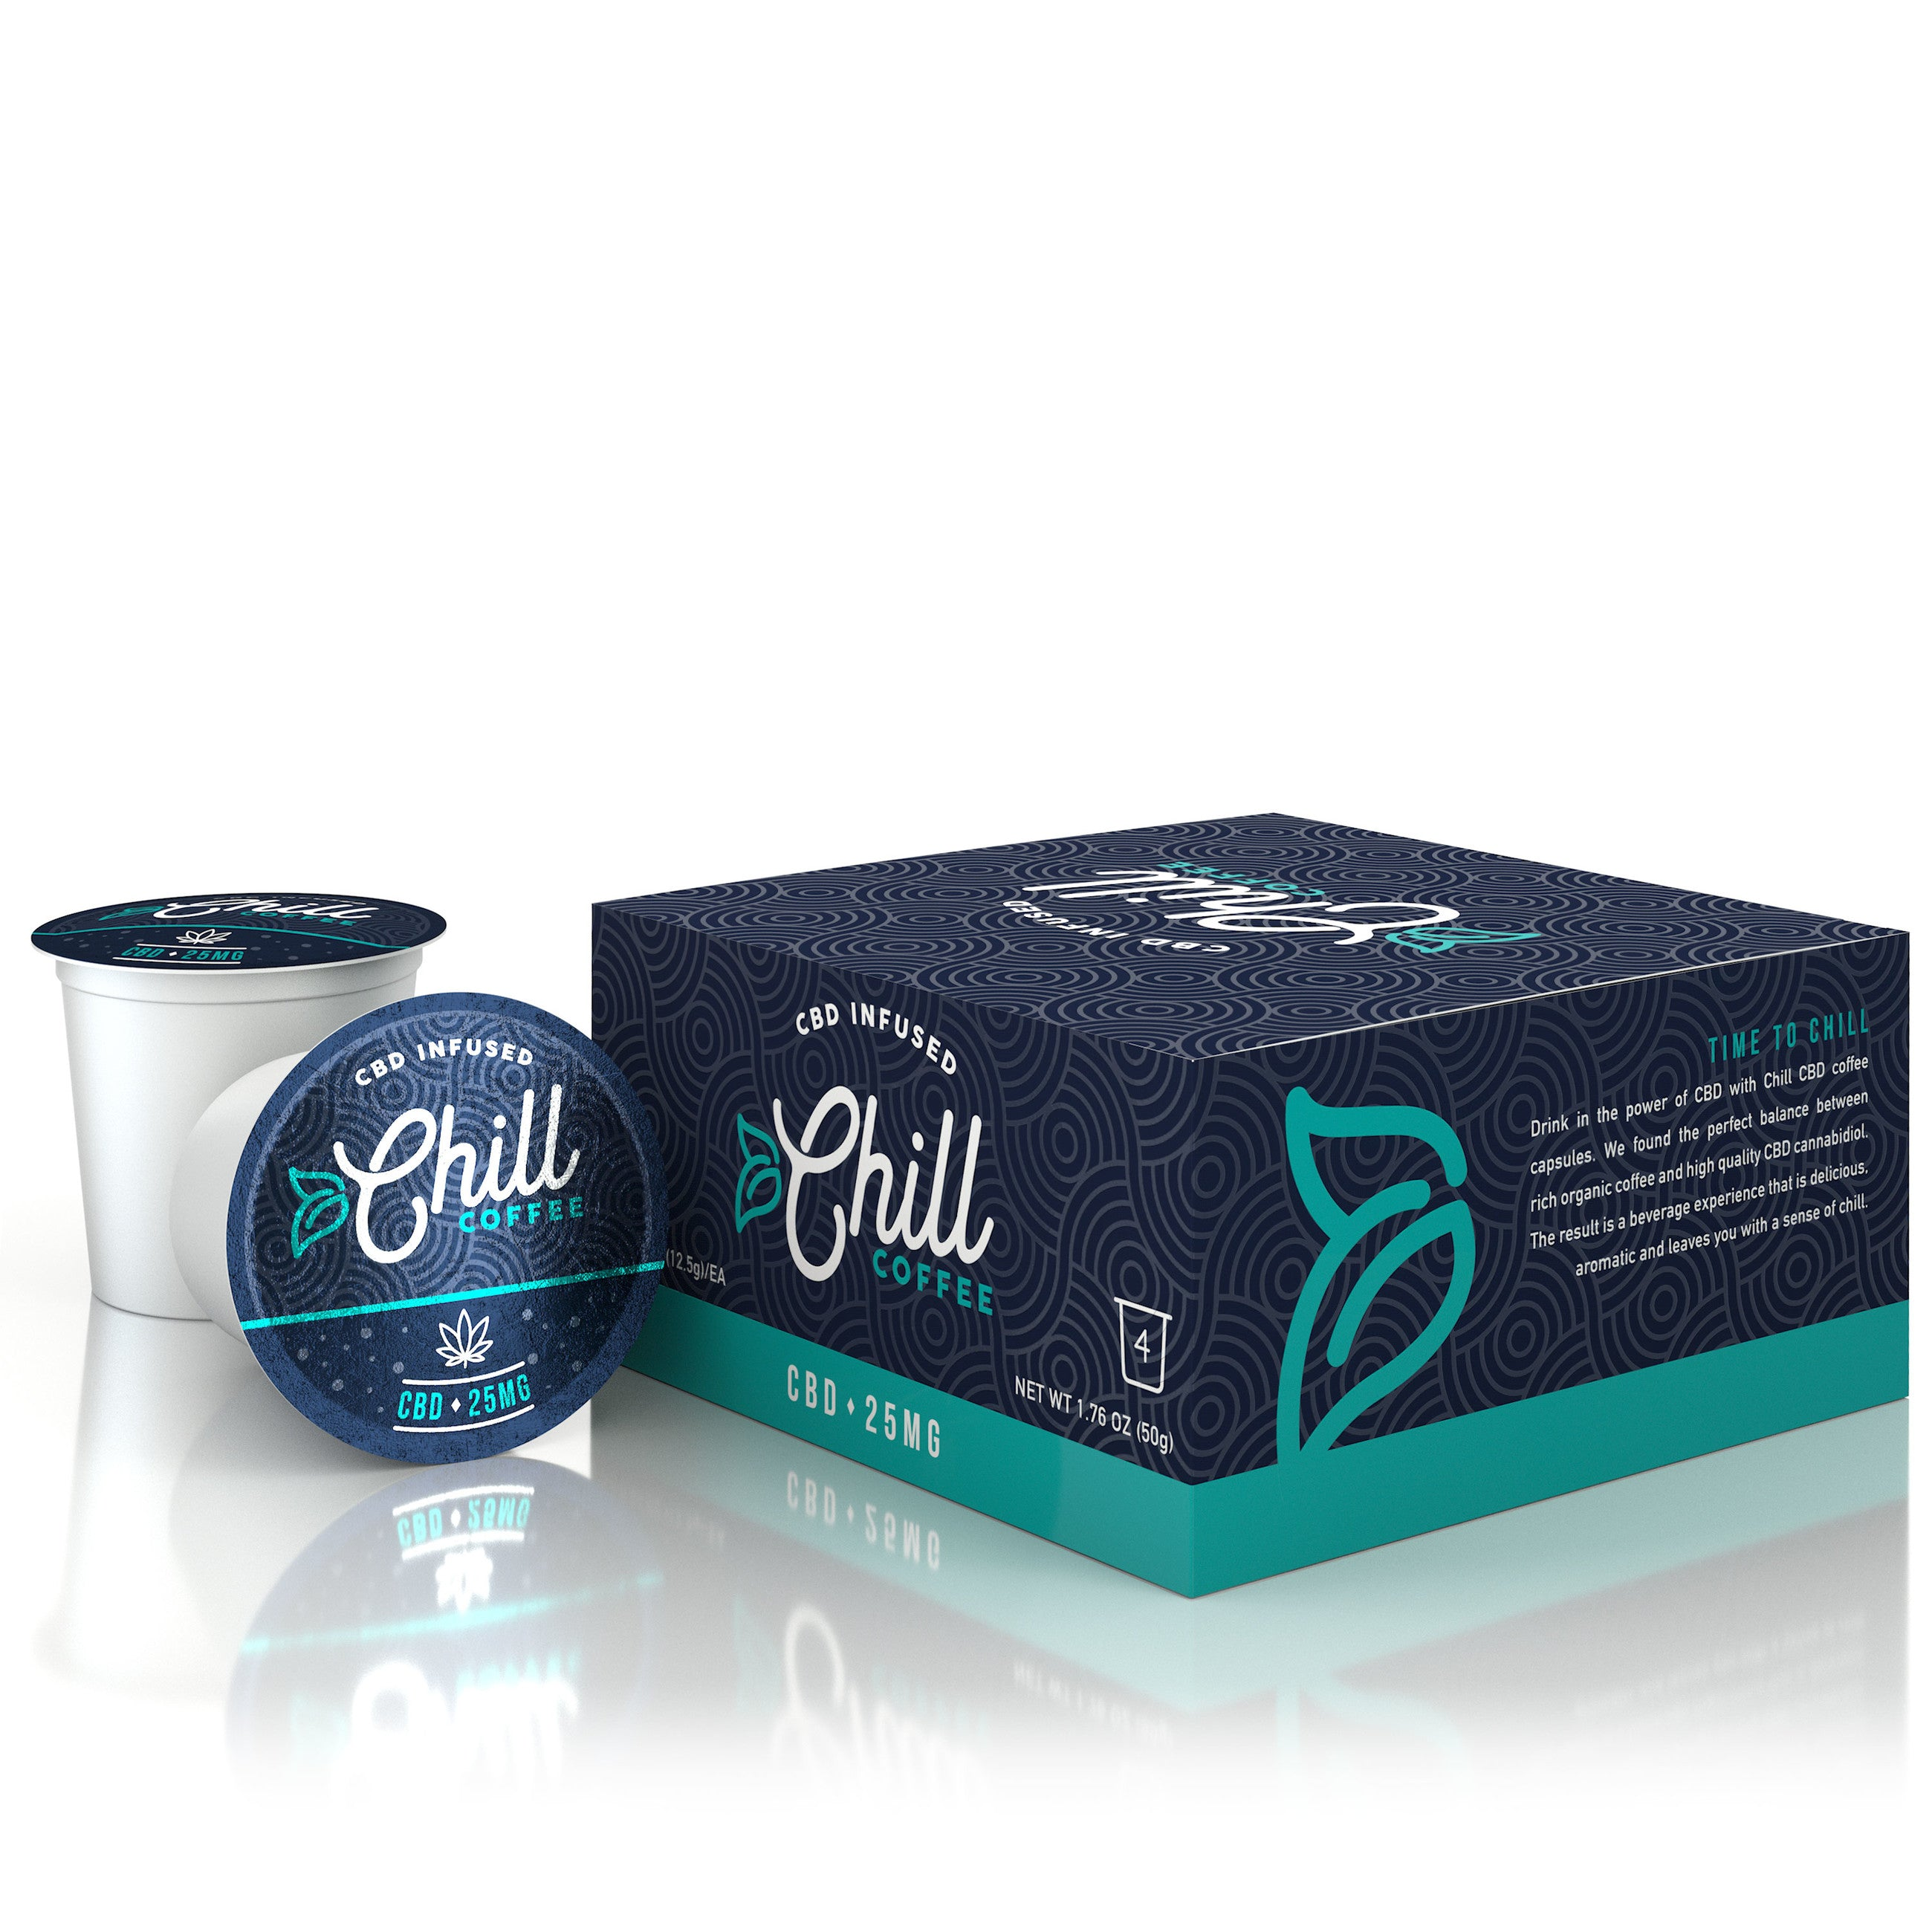 Chill CBD Coffee (4 pack) - 25mg - My CBD Mall